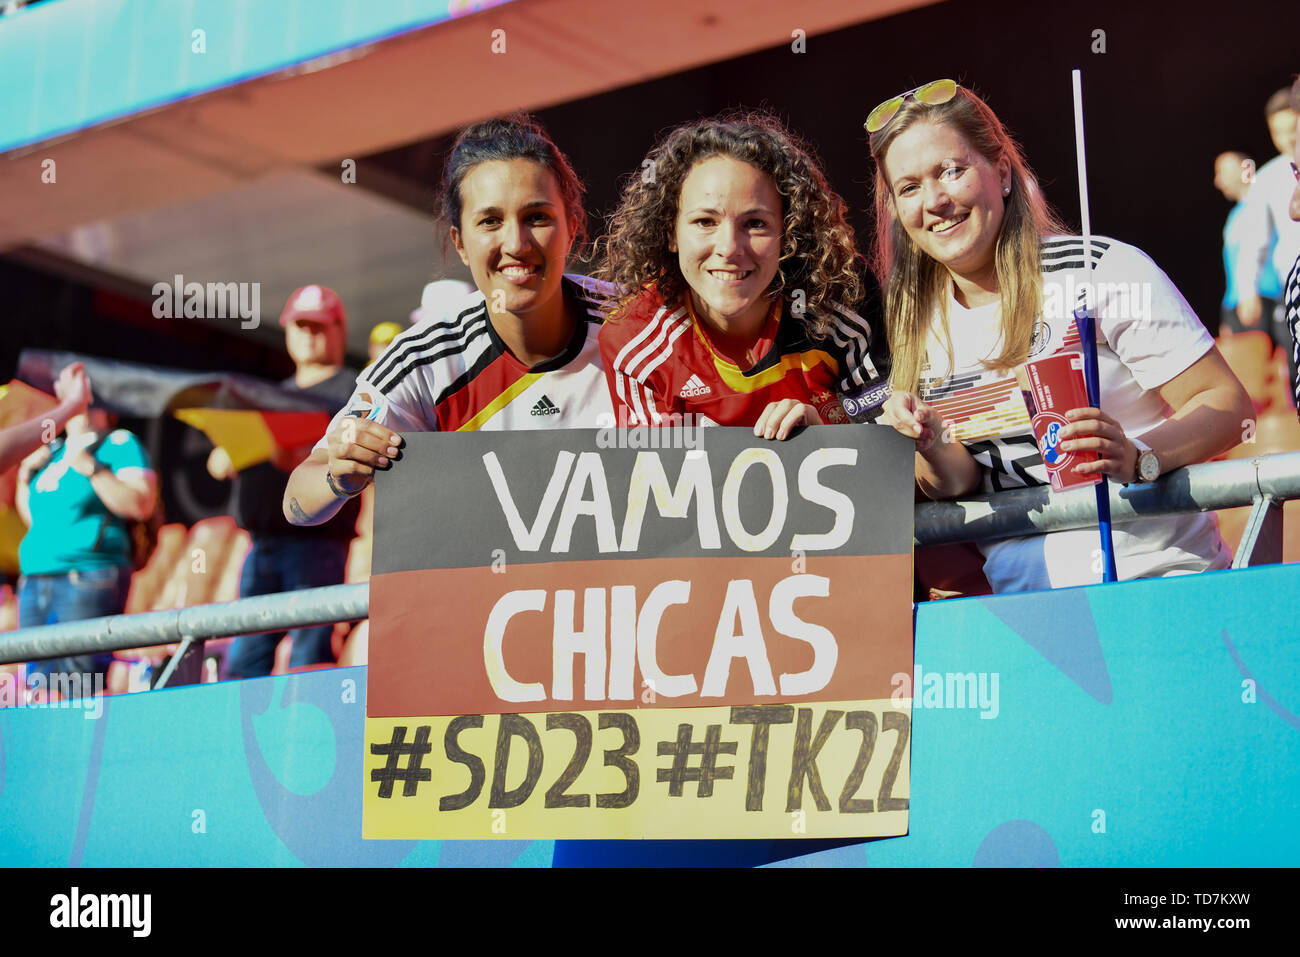 Valenciennes, Frankreich. 12th June, 2019. German fans with poster for Turid Knaak (DFB Women) (22) and Sara Doorsoun (DFB Women) (23), 12.06.2019, Valenciennes (France), Football, FIFA Women's World Cup 2019, Germany - Spain, FIFA REGULATIONS PROHIBIT ANY USE OF PHOTOGRAPHS AS IMAGE SEQUENCES AND/OR QUASI VIDEO. | usage worldwide Credit: dpa/Alamy Live News - Stock Image